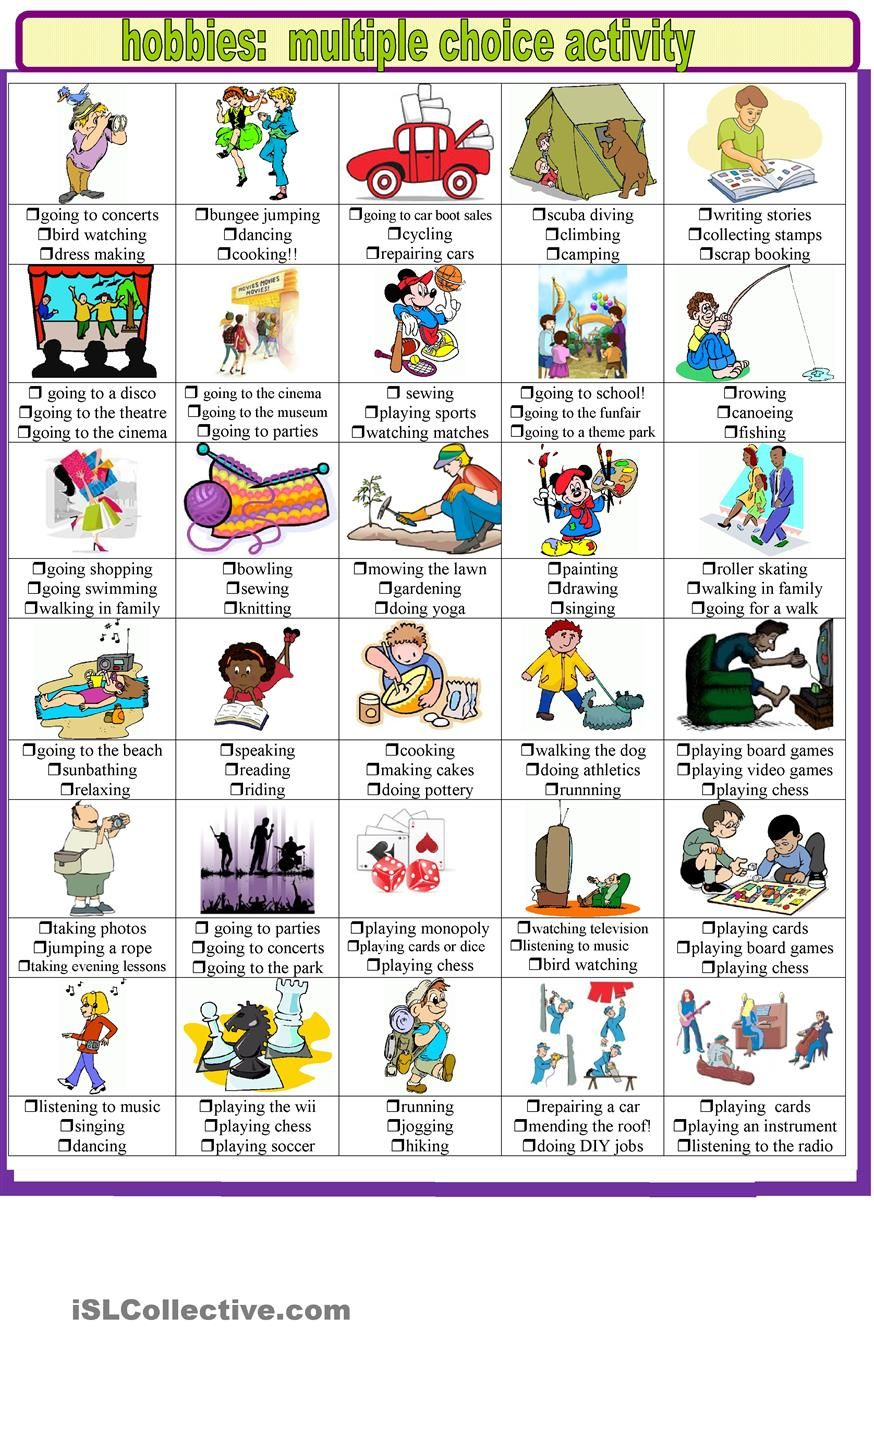 Hobbies and pastimes multiple choice activities